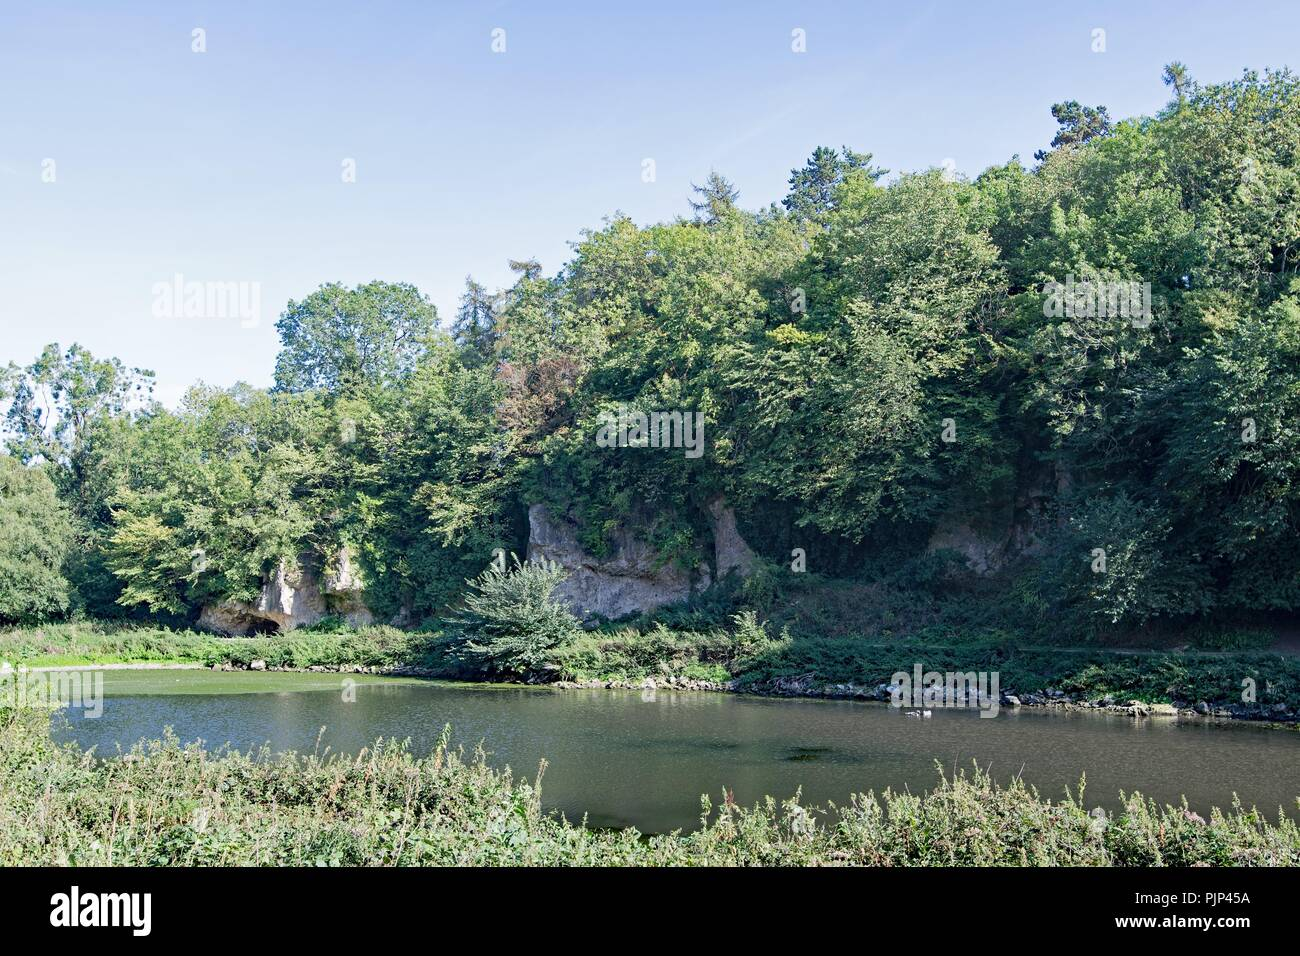 Taken to capture sight of some of the concealed caves at Creswell Craggs, in Derbyshire. - Stock Image